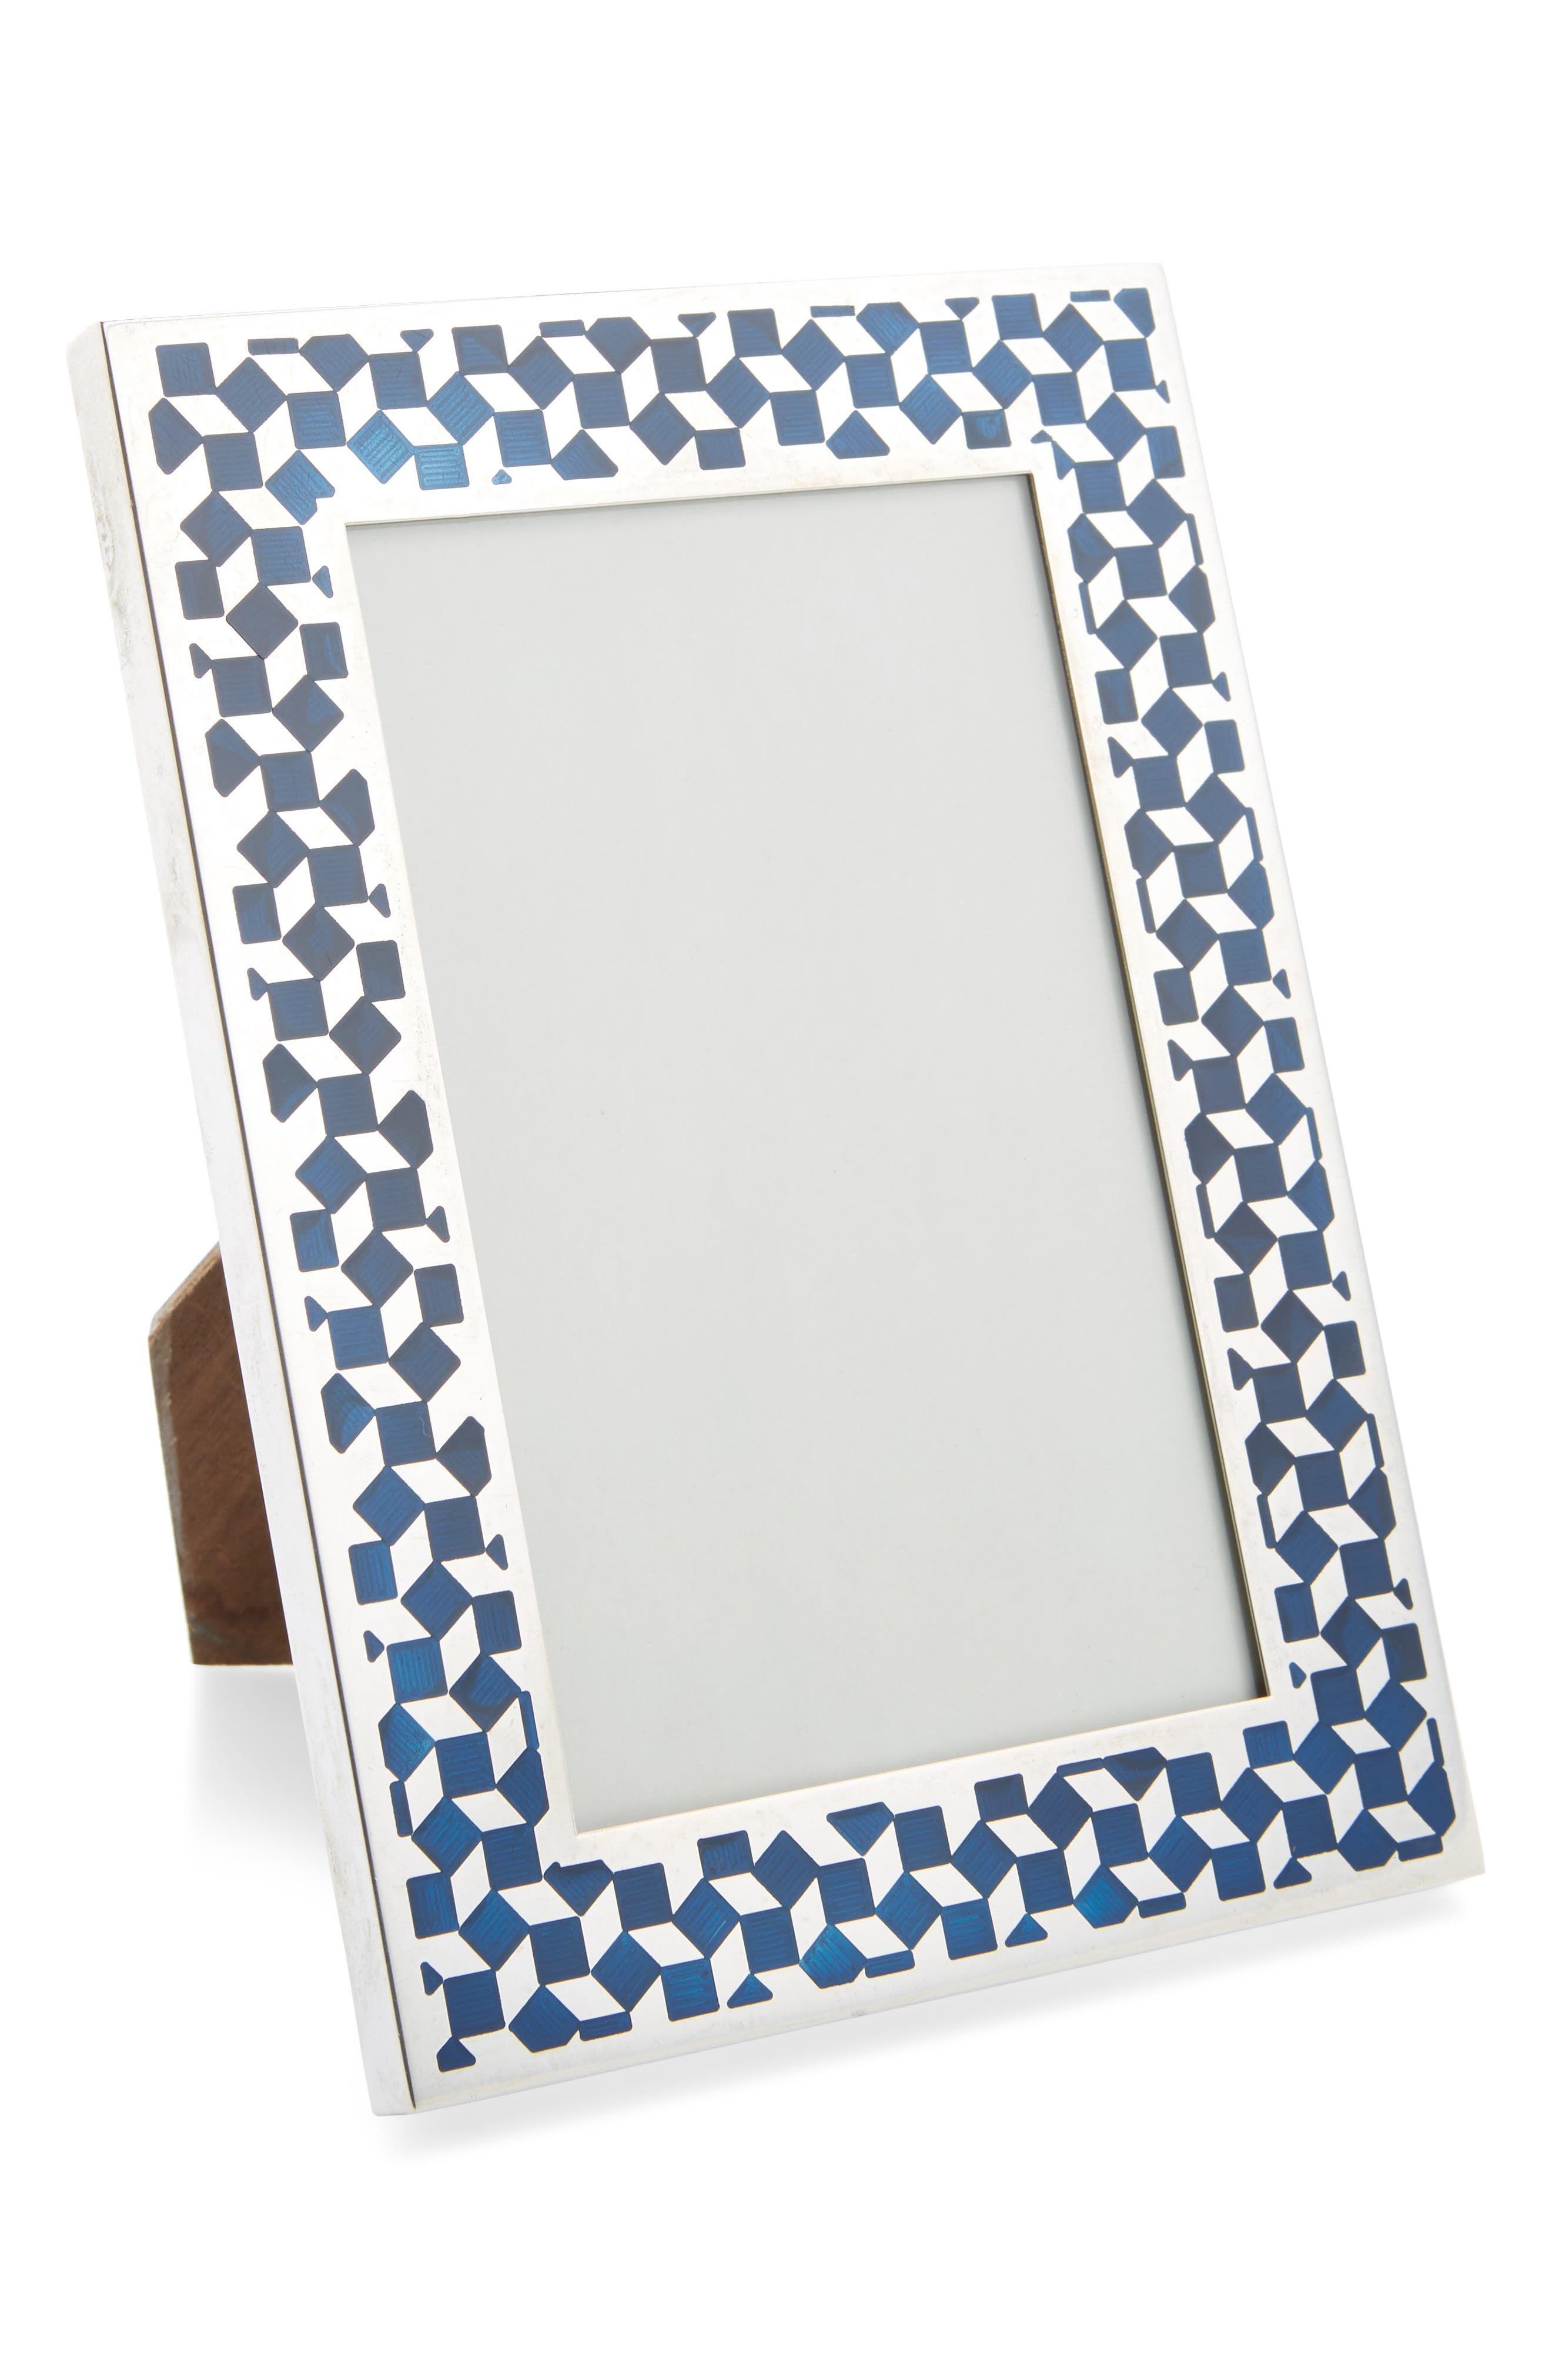 One of a Kind Vintage Sterling Silver & Enamel Geo Pattern Frame,                             Main thumbnail 1, color,                             Silver